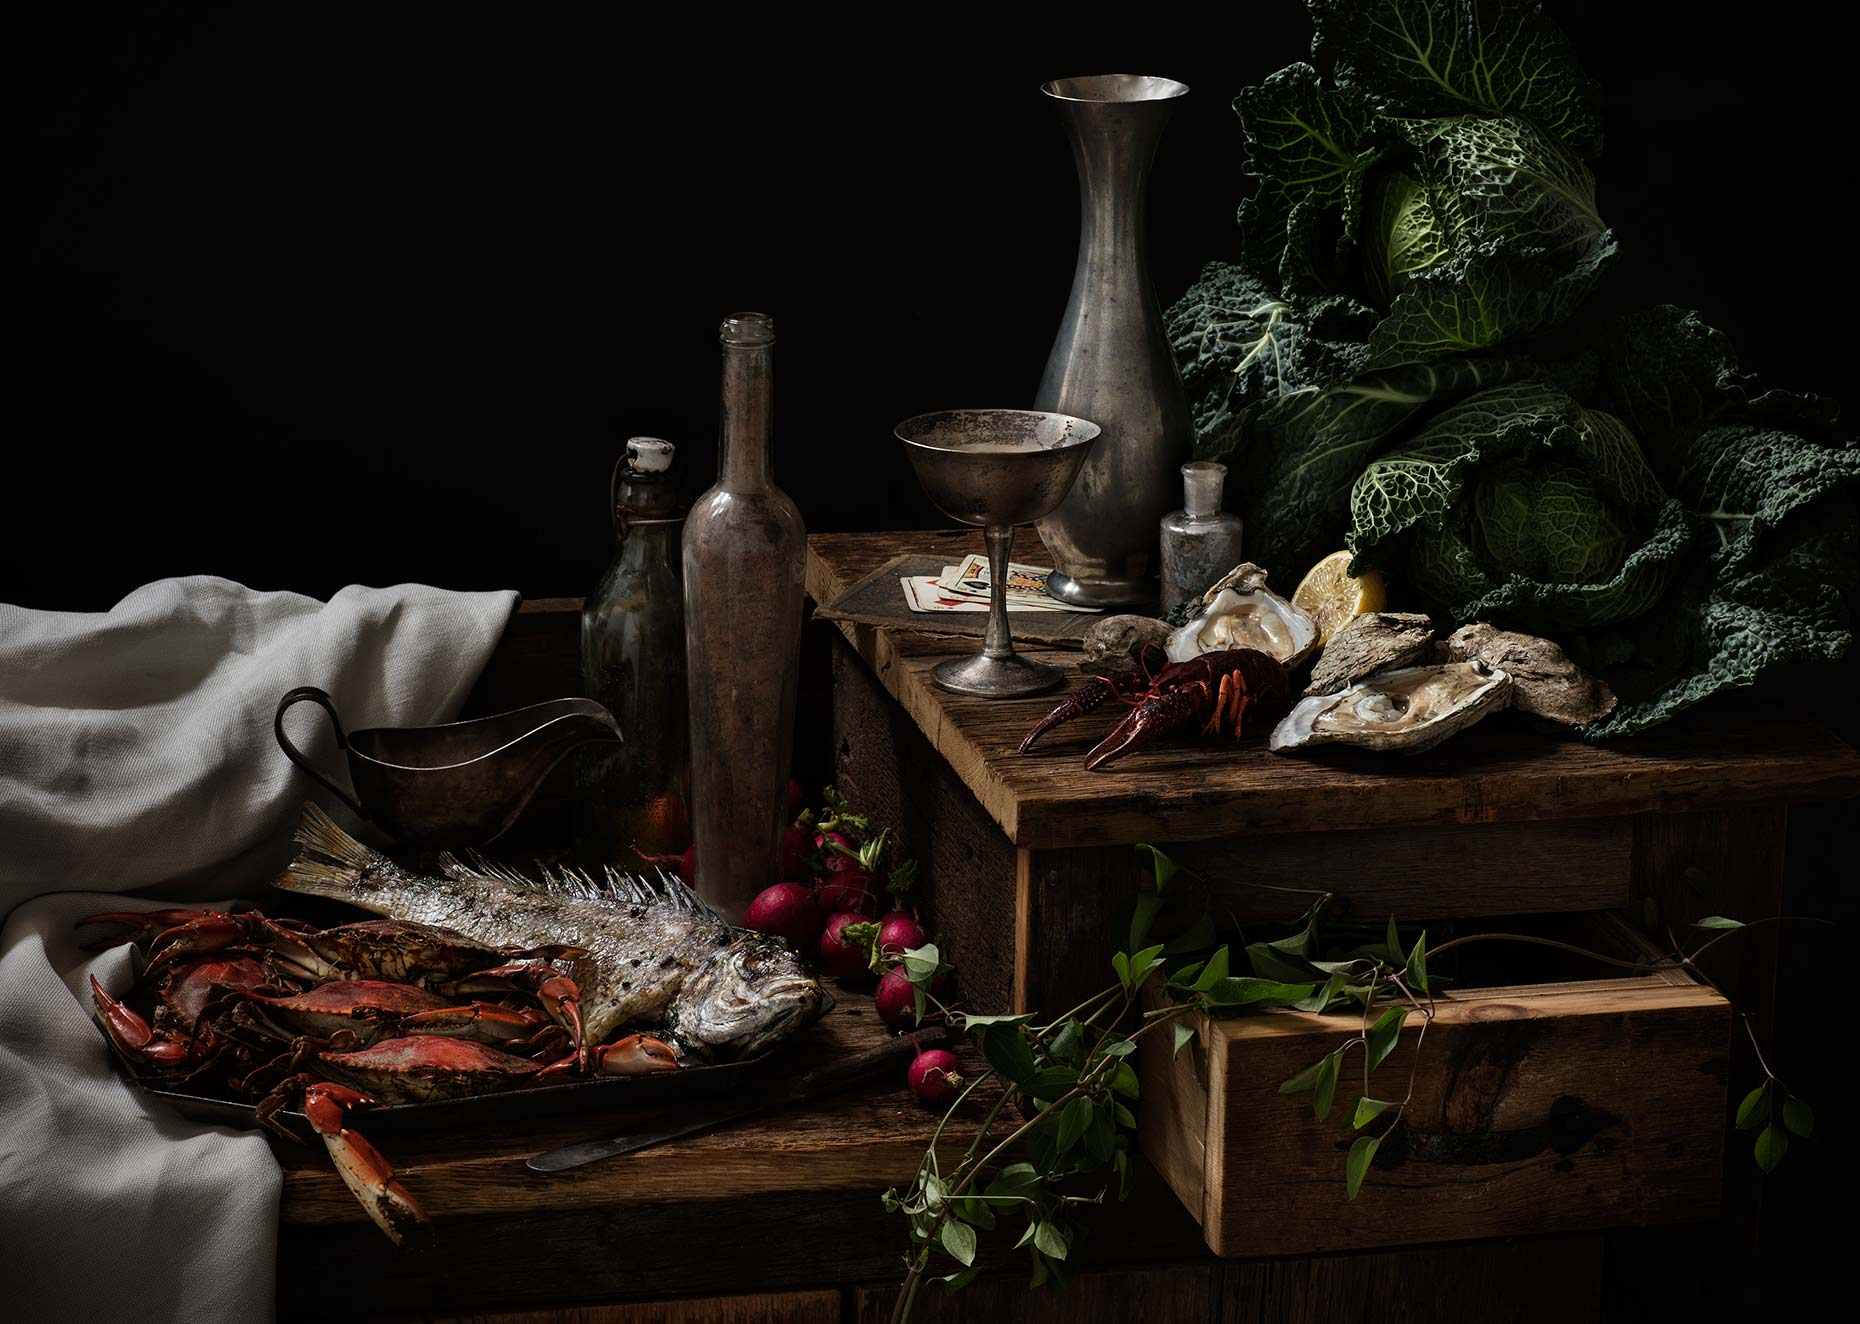 Dutch masters style still life photograph featuring seafood and vintage props.